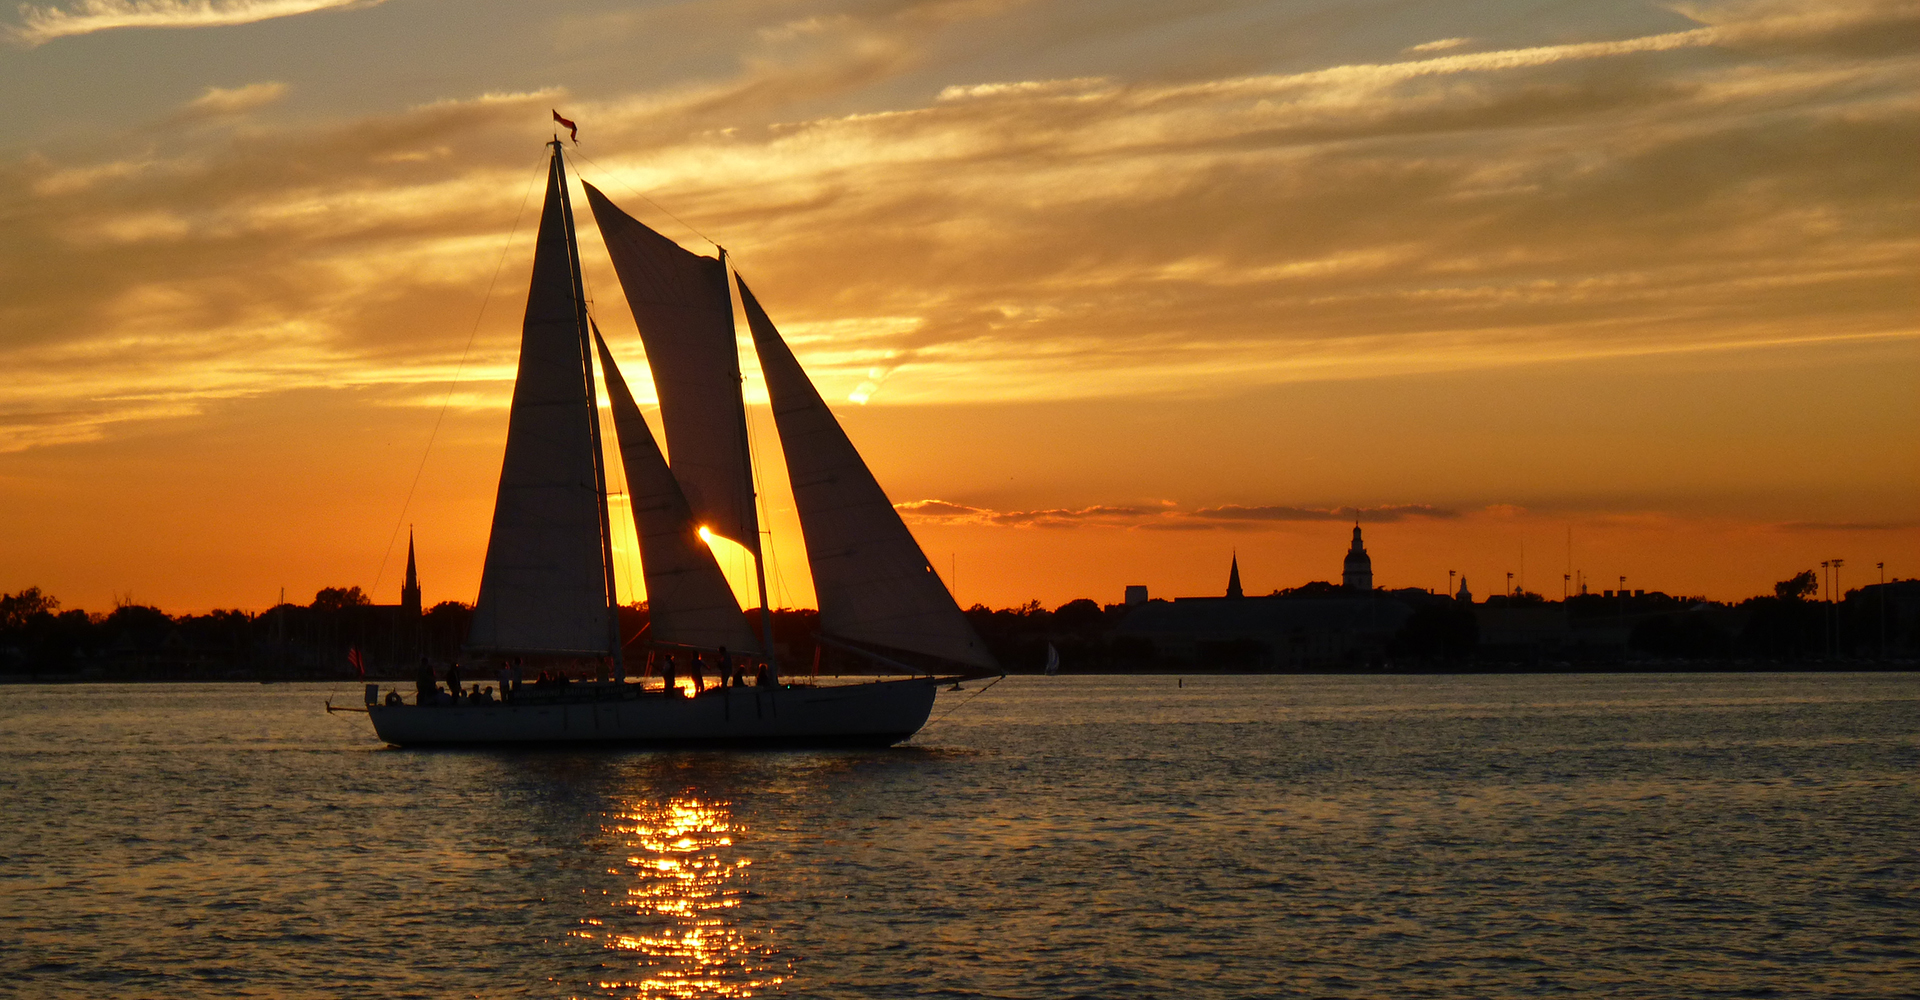 Schooner sailing in orange sunset in Annapolis